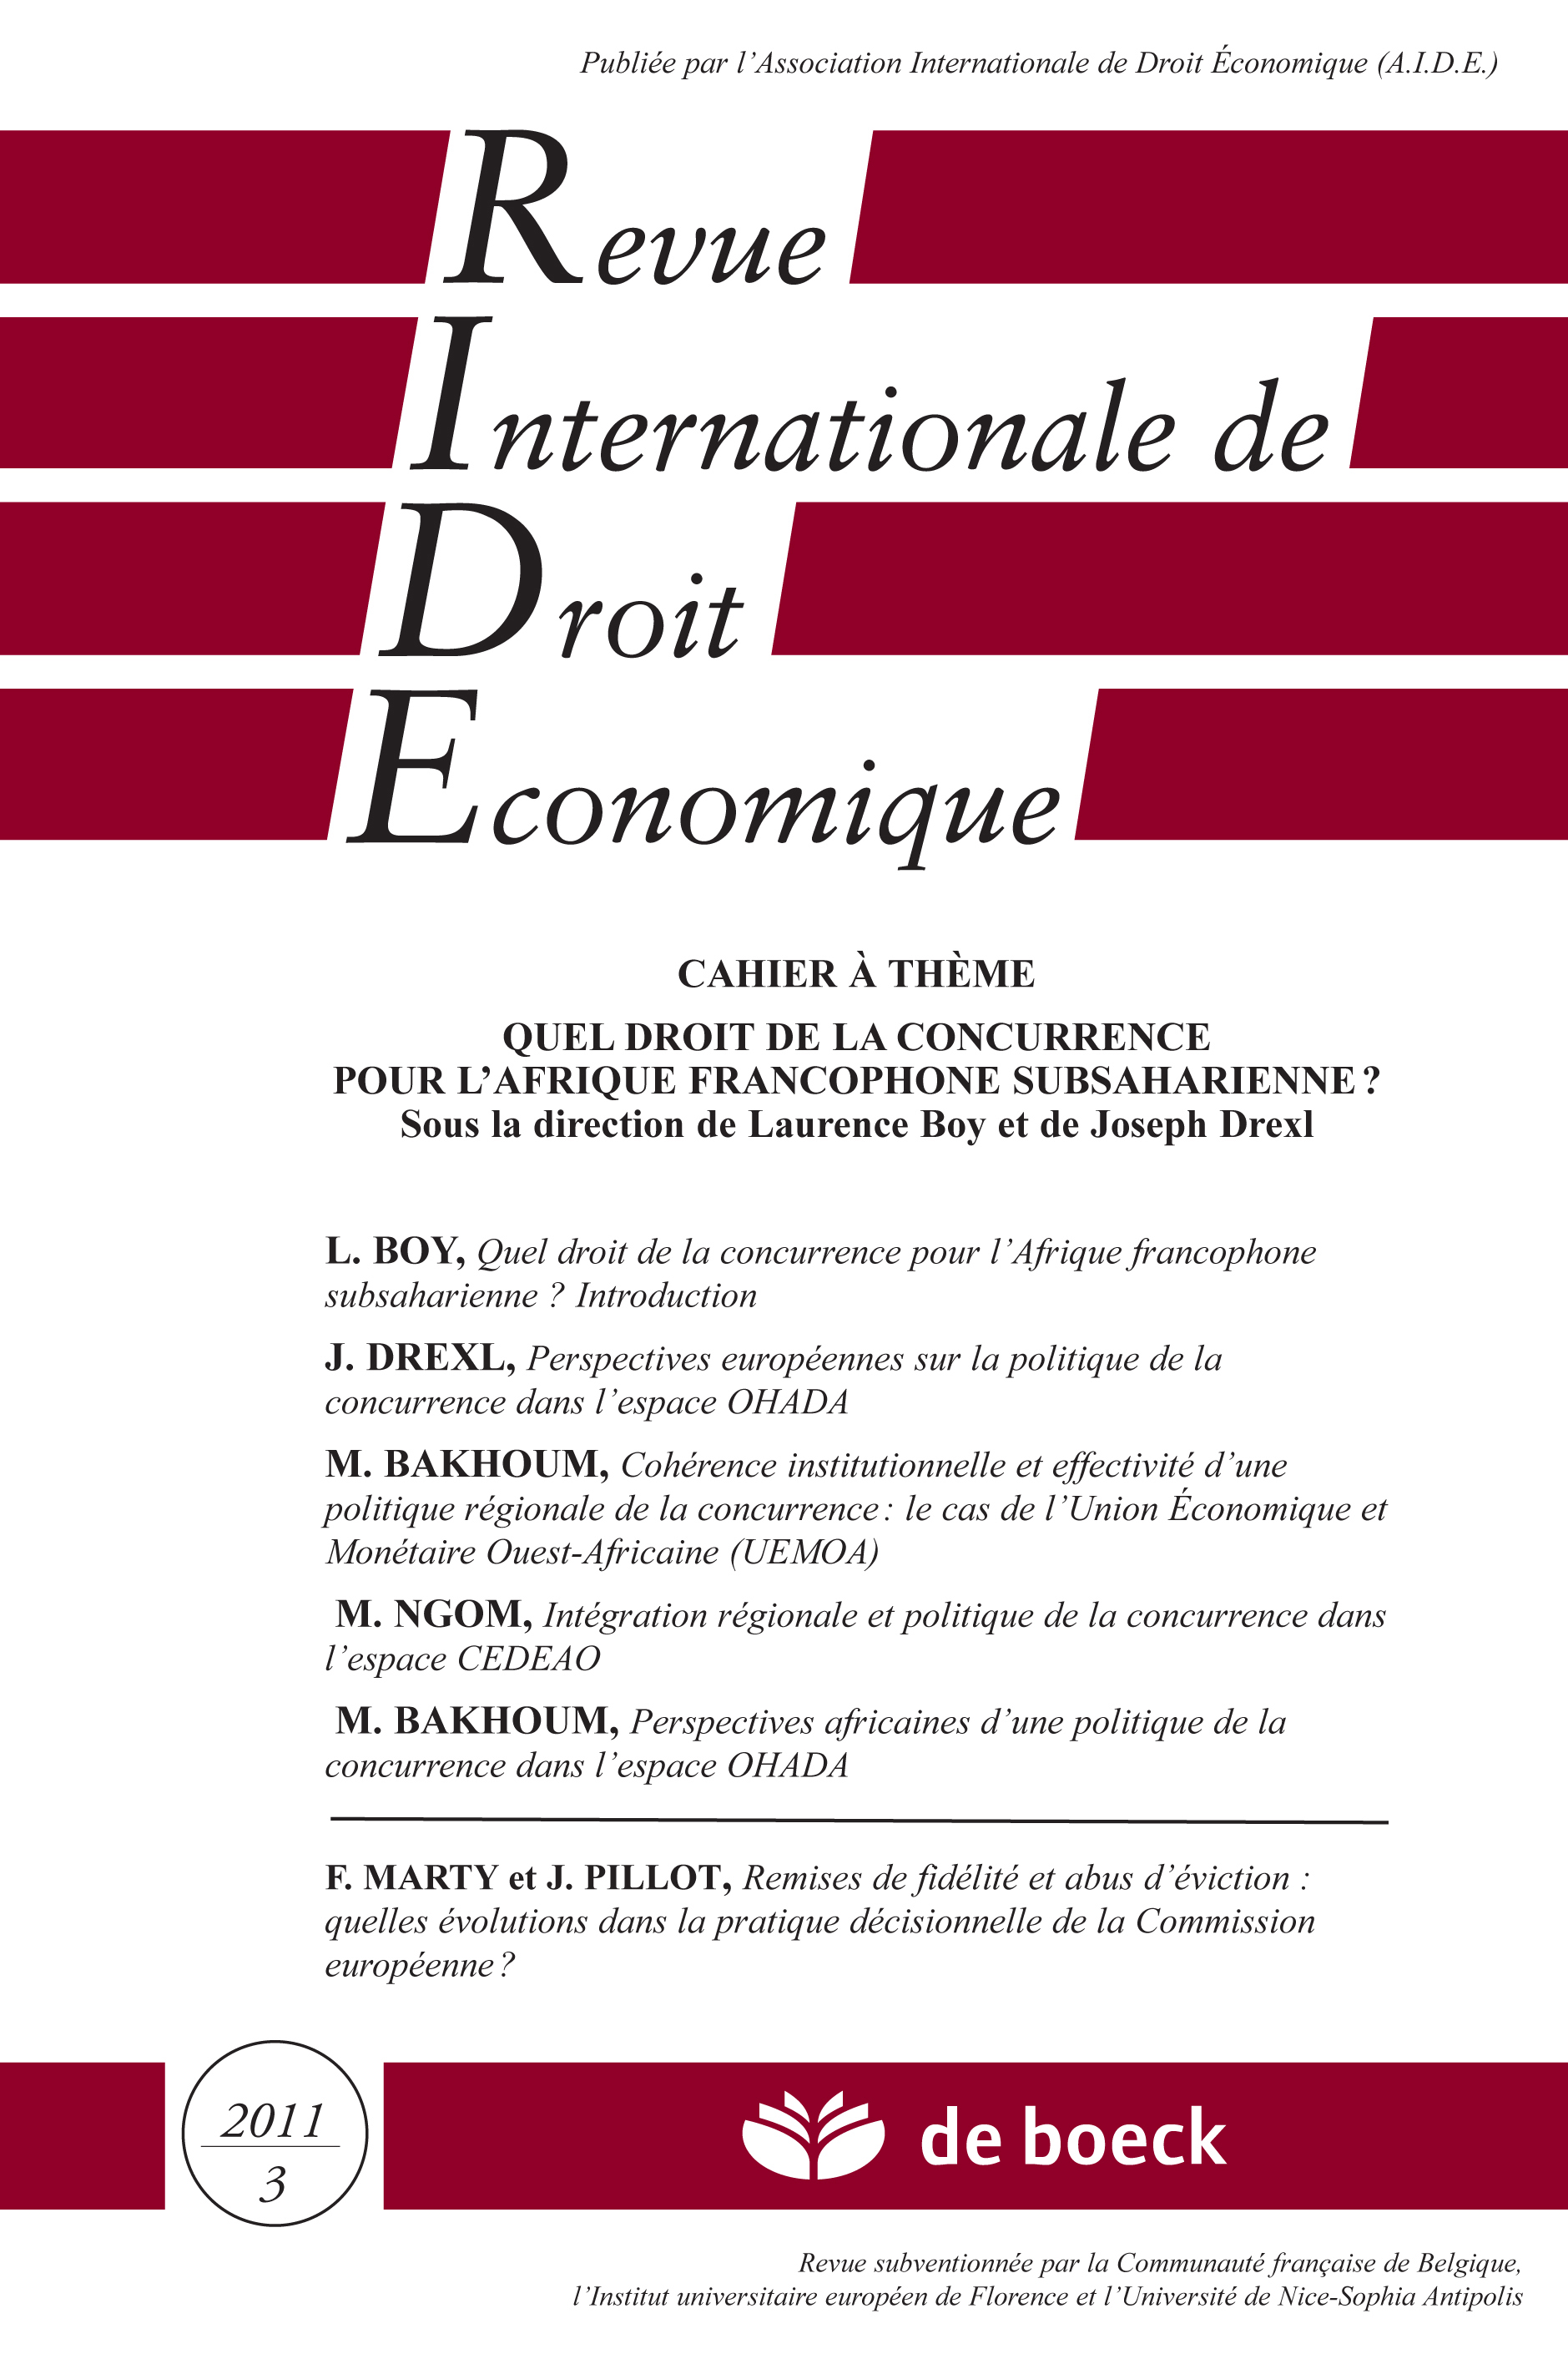 REVUE INTERNATIONALE DE DROIT ECONOMIQUE 2011/3